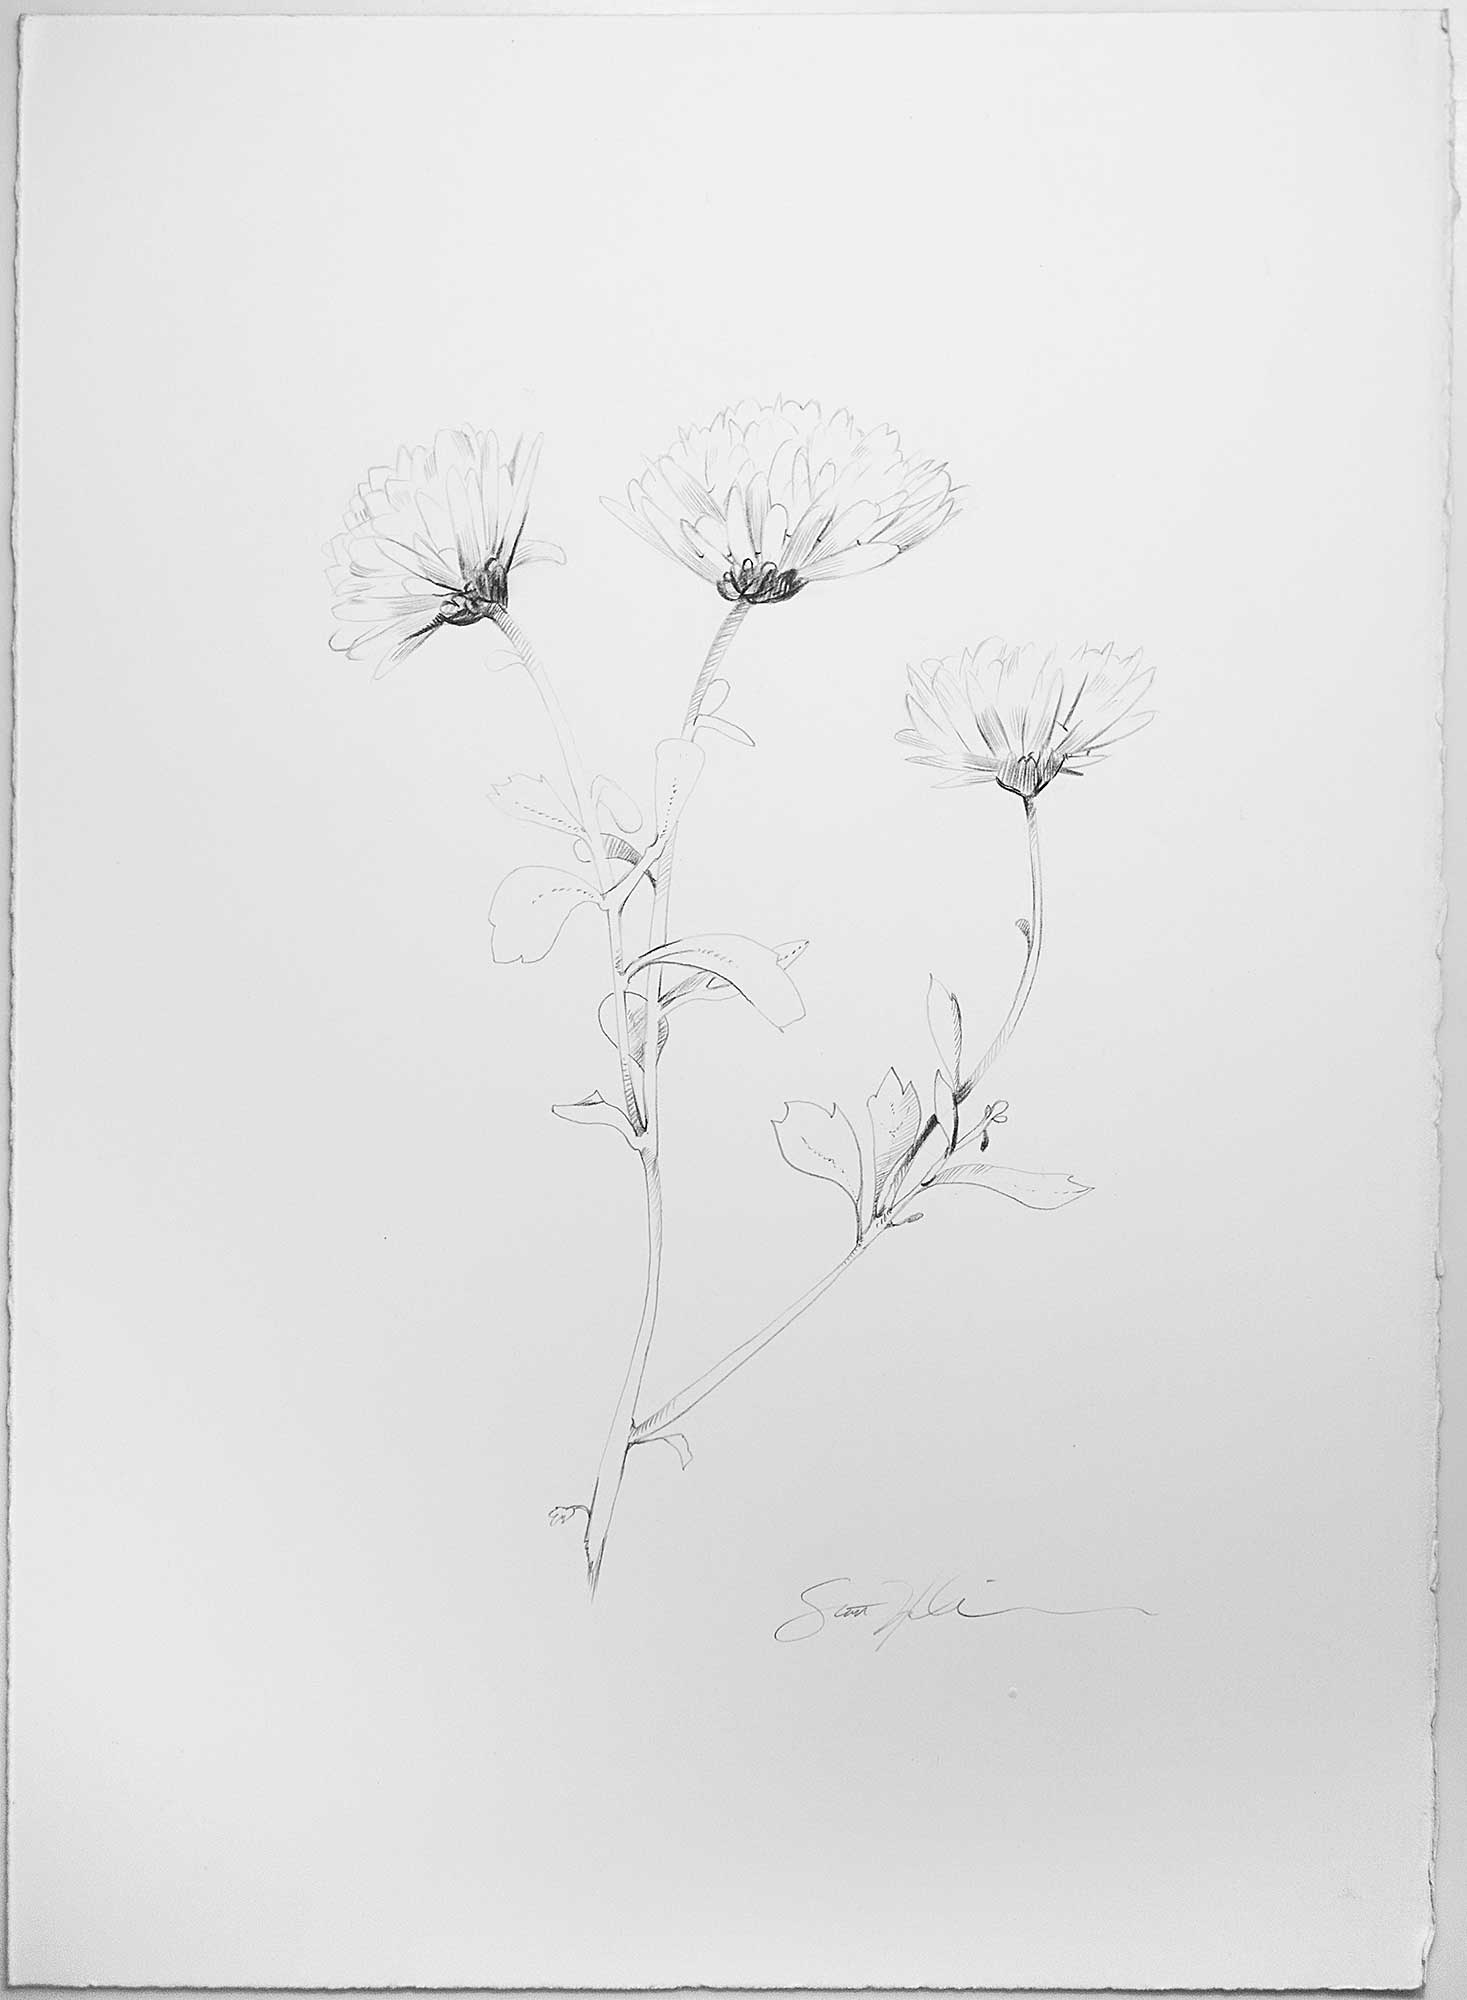 Purchase Daises, A minimalistic study of flowers by Scott Hutchion